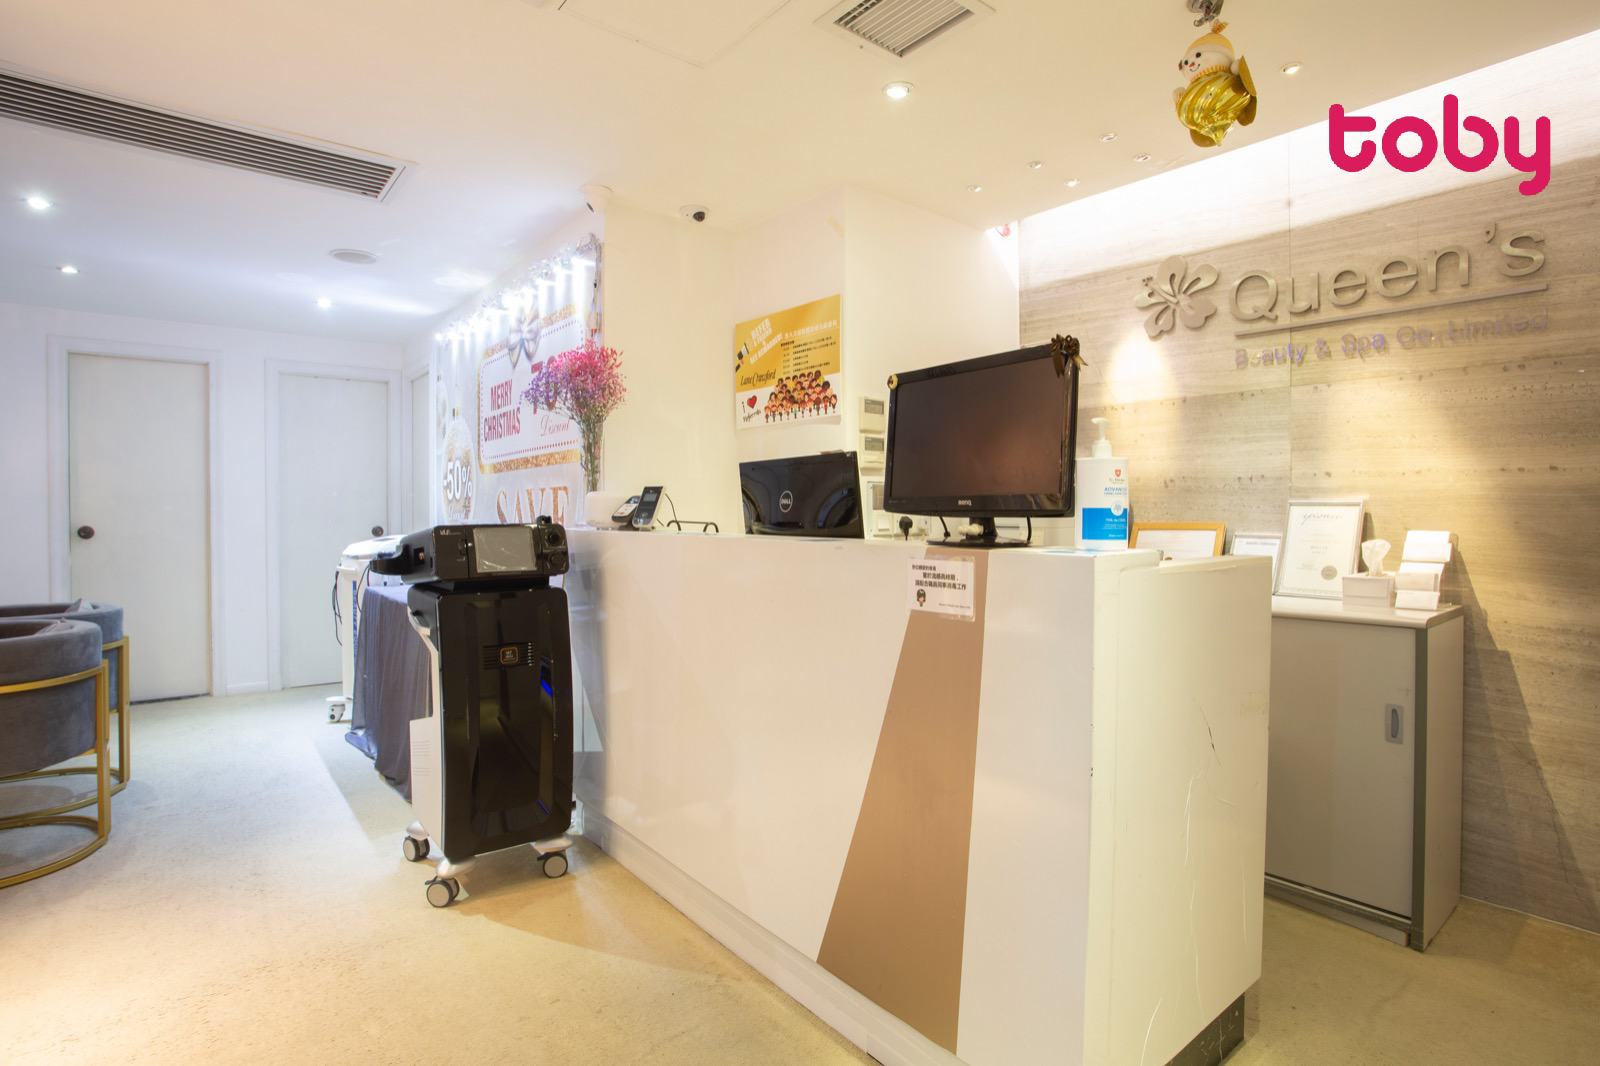 Queen's Beauty & Spa (尖沙咀店)